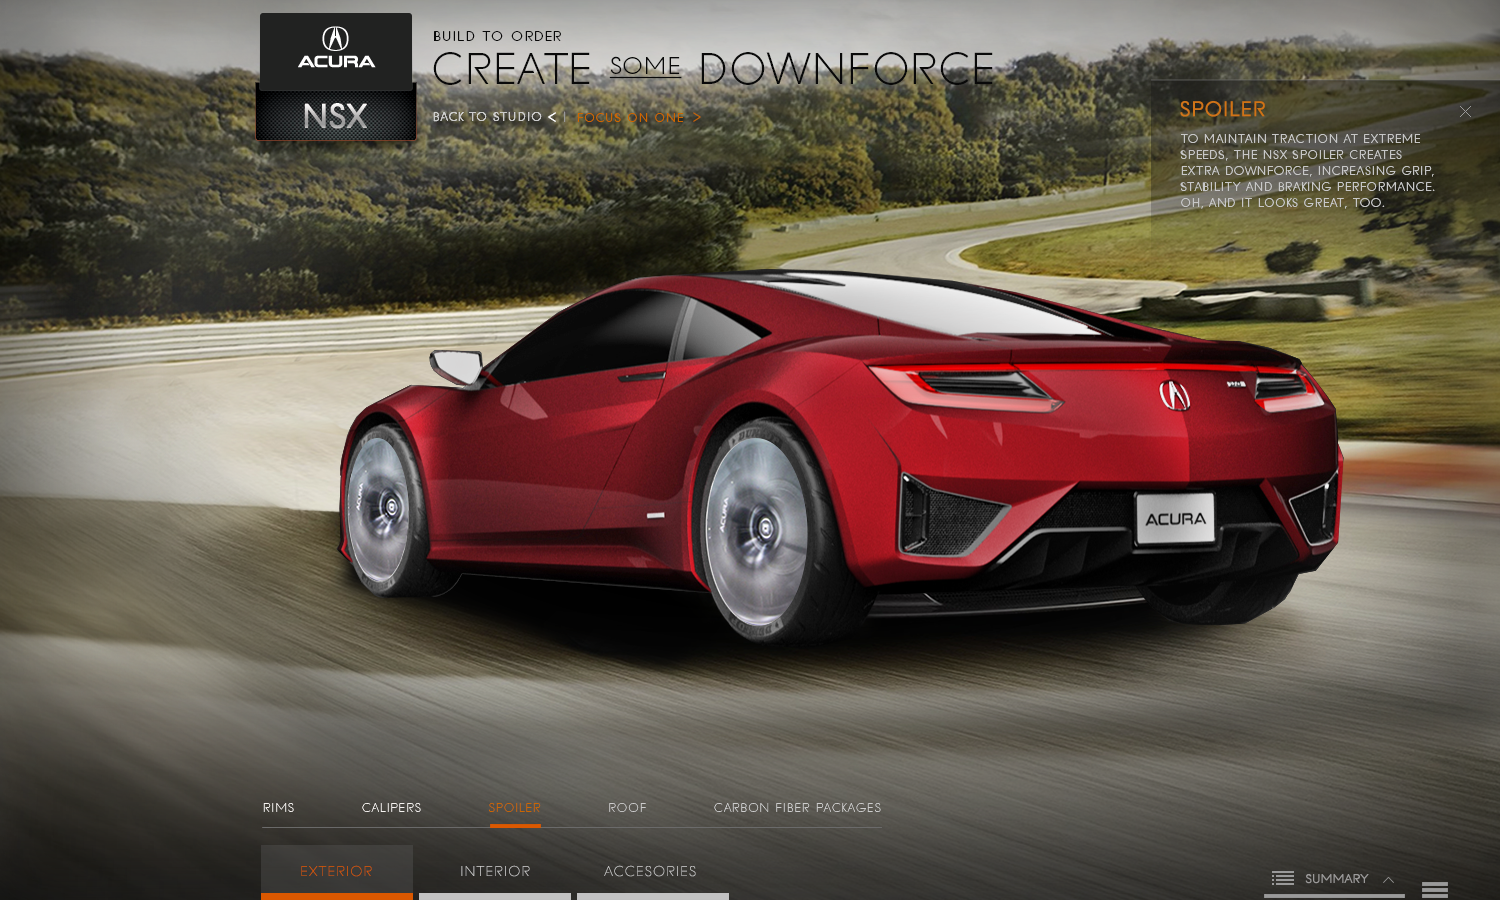 Acura_NSX_BTO_Concept_25.png